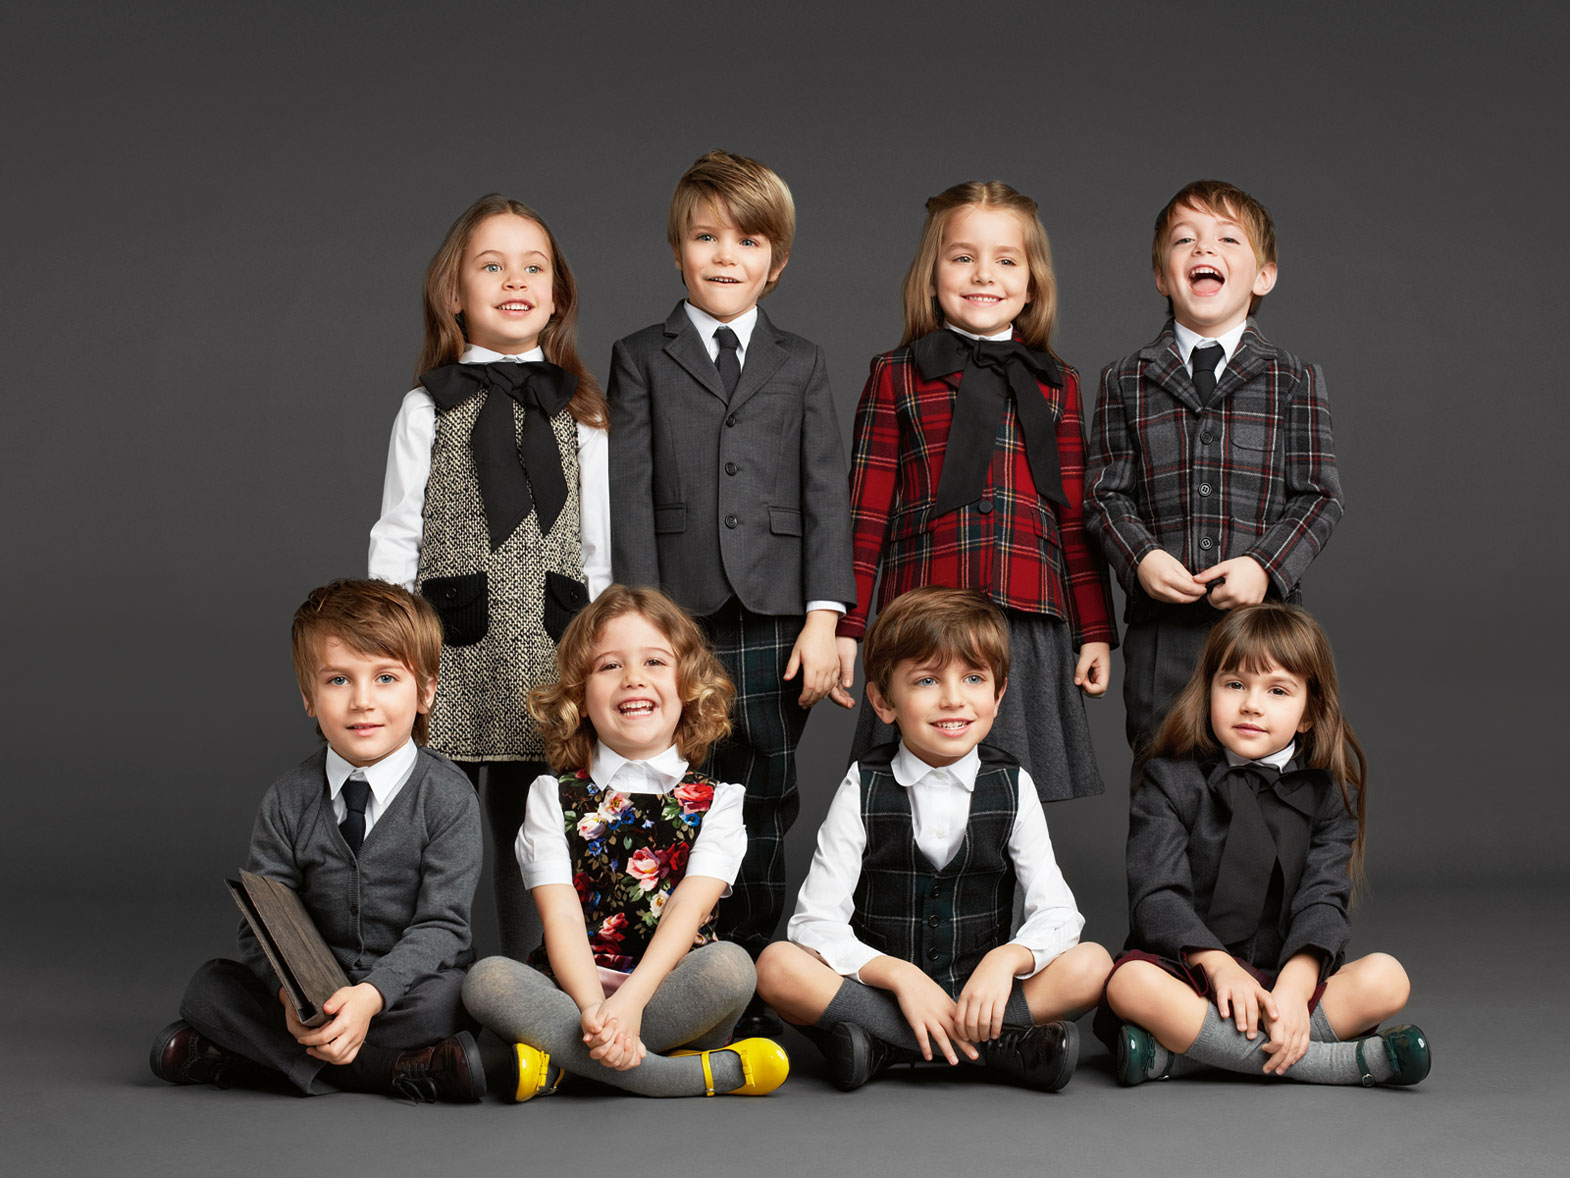 dolce-and-gabbana-fw-2014-kids-collection+blog le chodraui